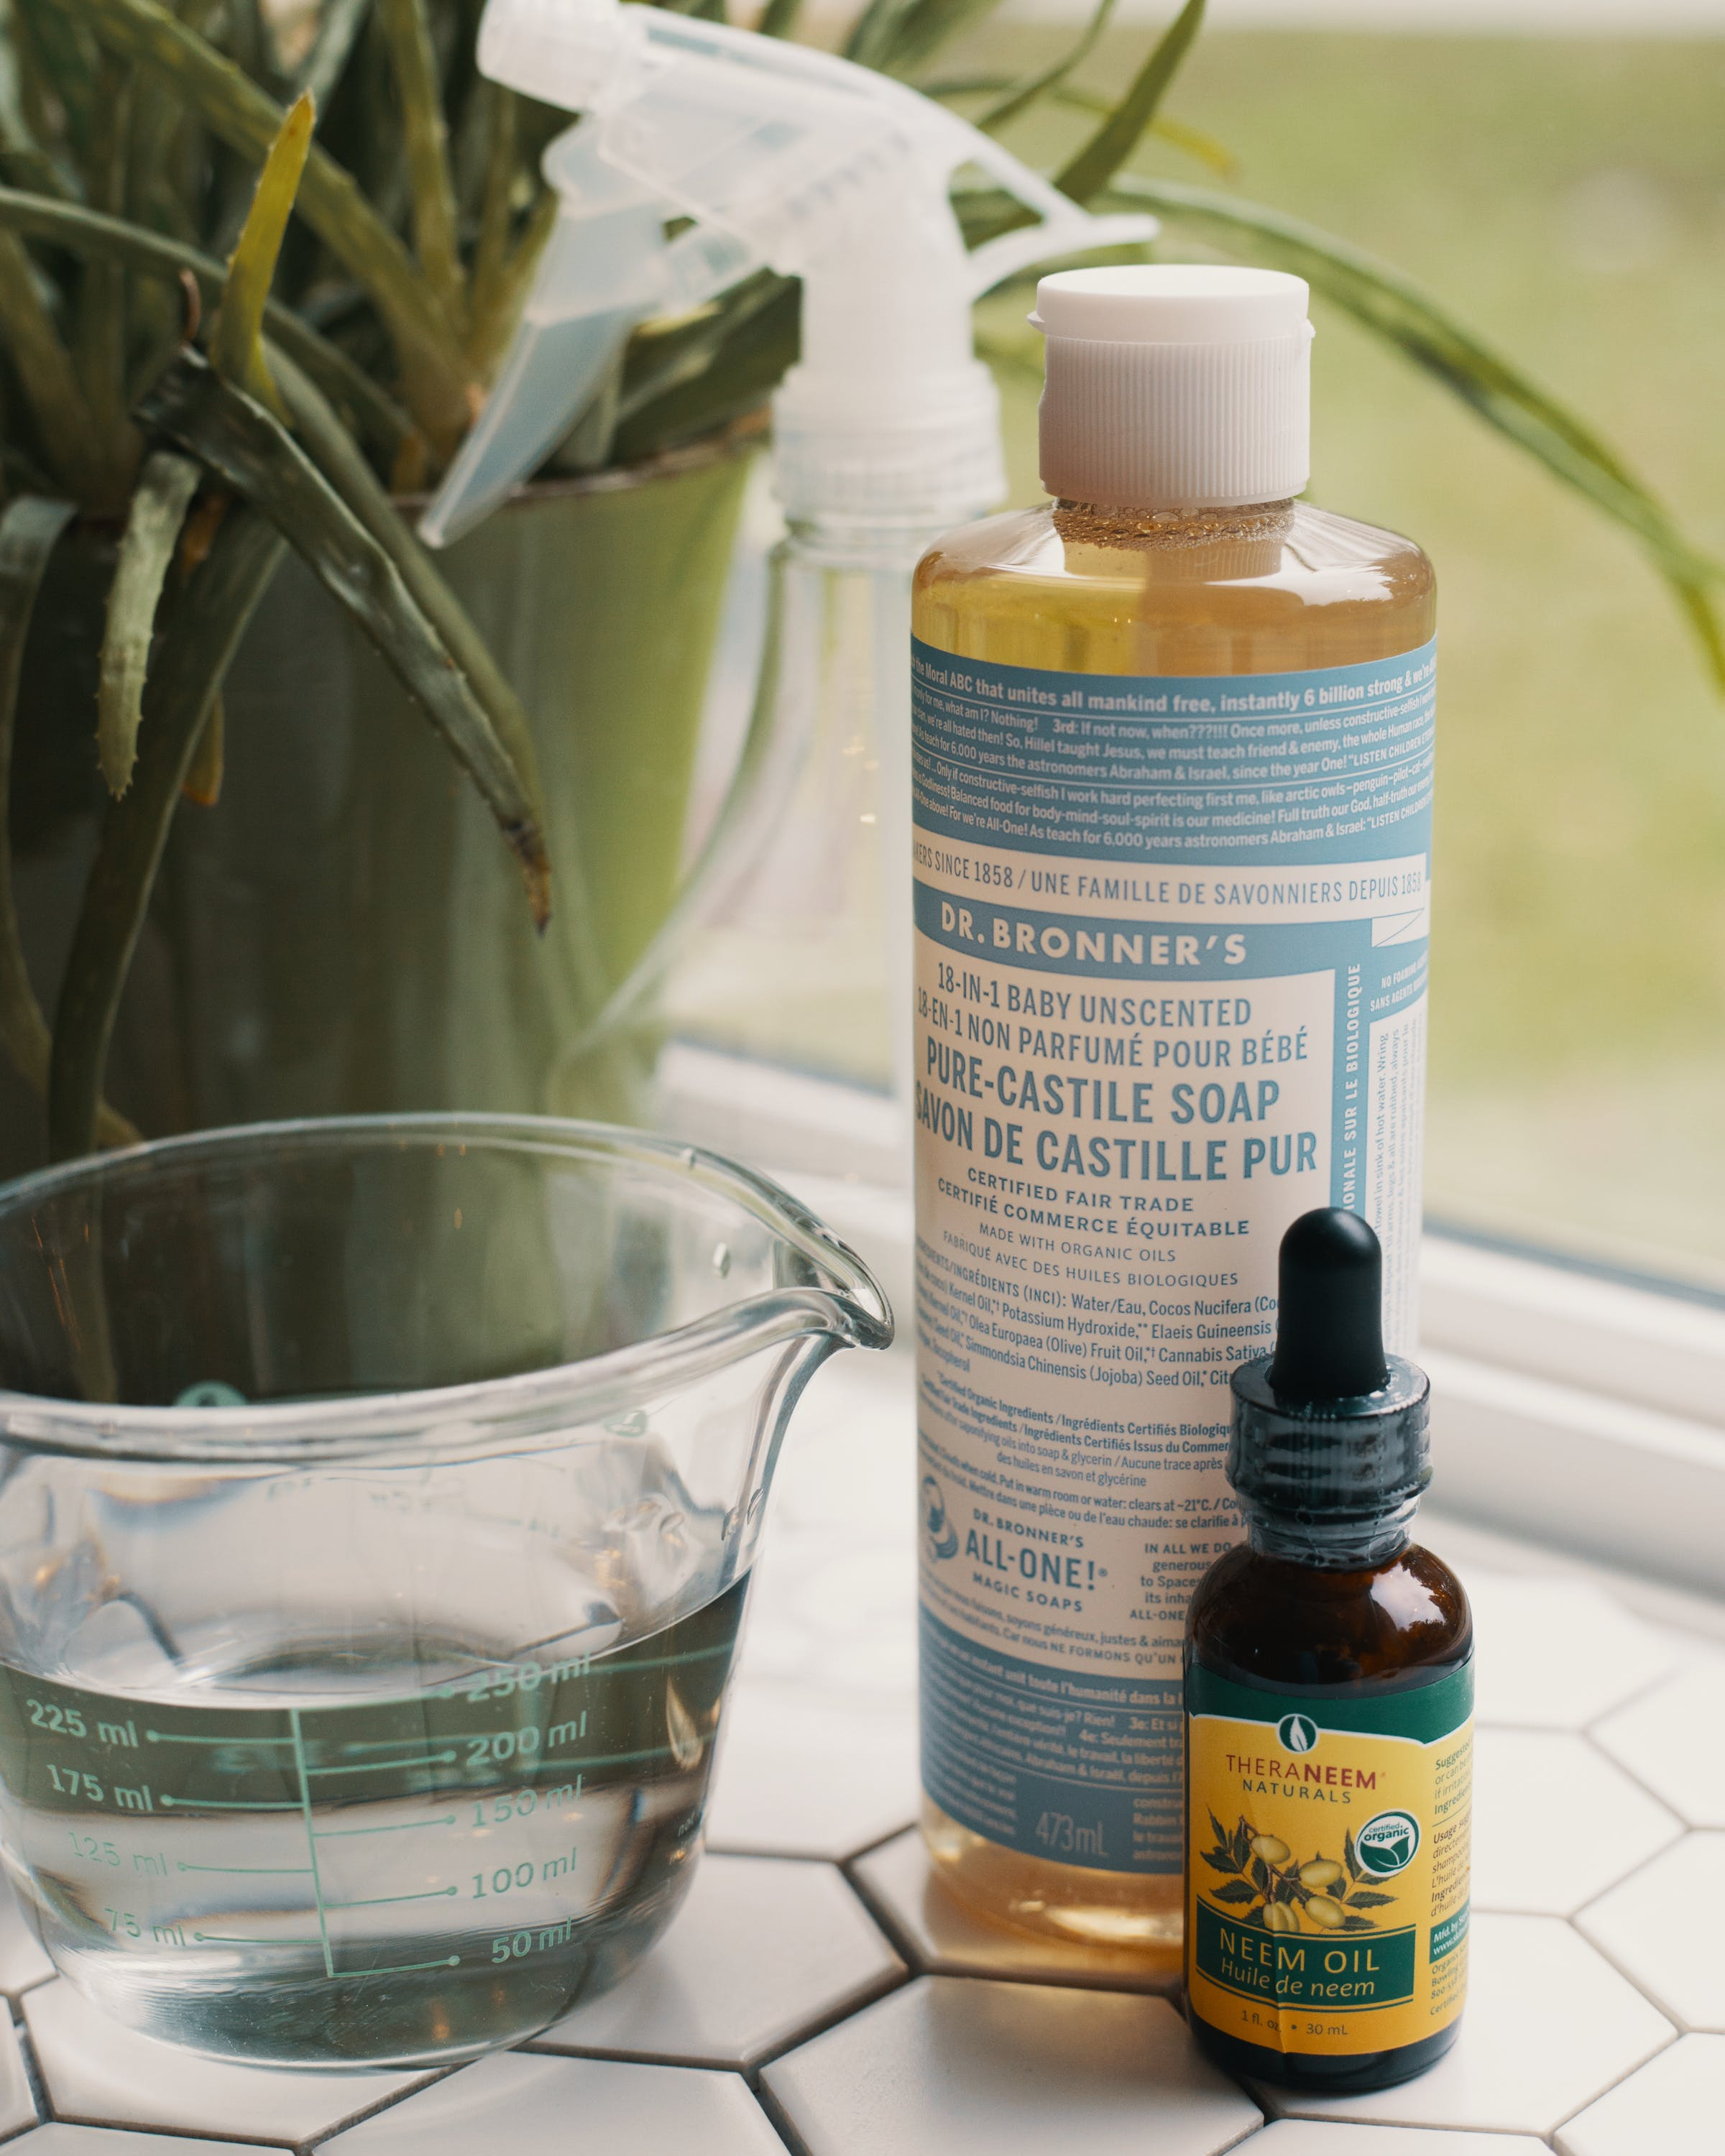 What is the Best Homemade Bug Spray for Weed Plants 2 What is the Best Homemade Bug Spray for Weed Plants?